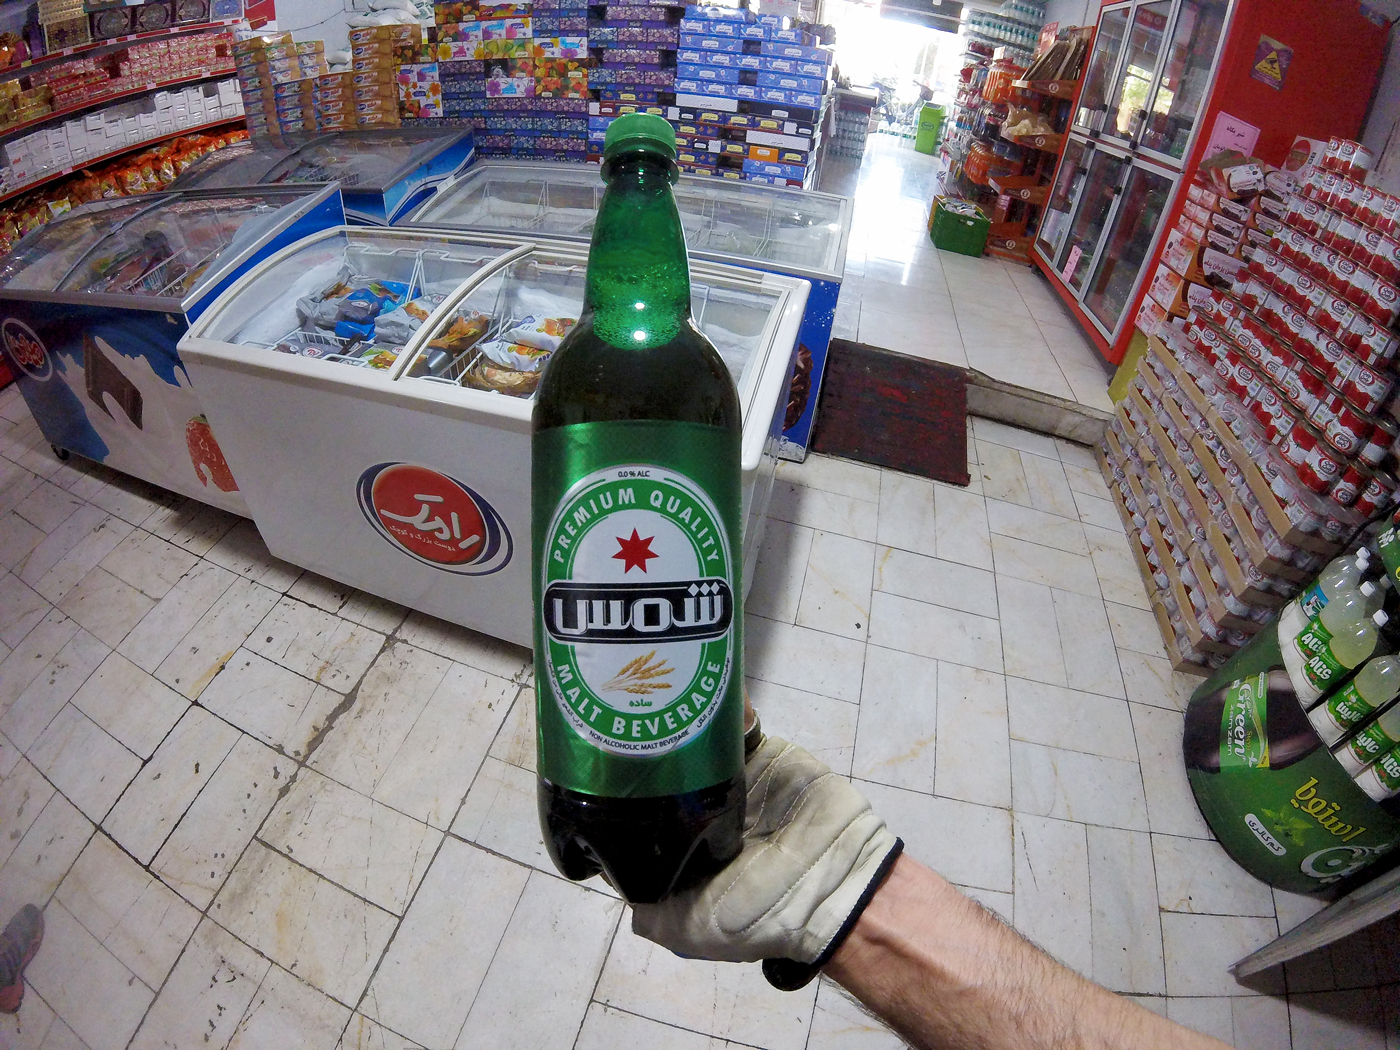 Bike trip, cross Iran by bike, malt drink, local beer without alcohol. Cycling travel, biketouring, cycling Iran, malt beverage.